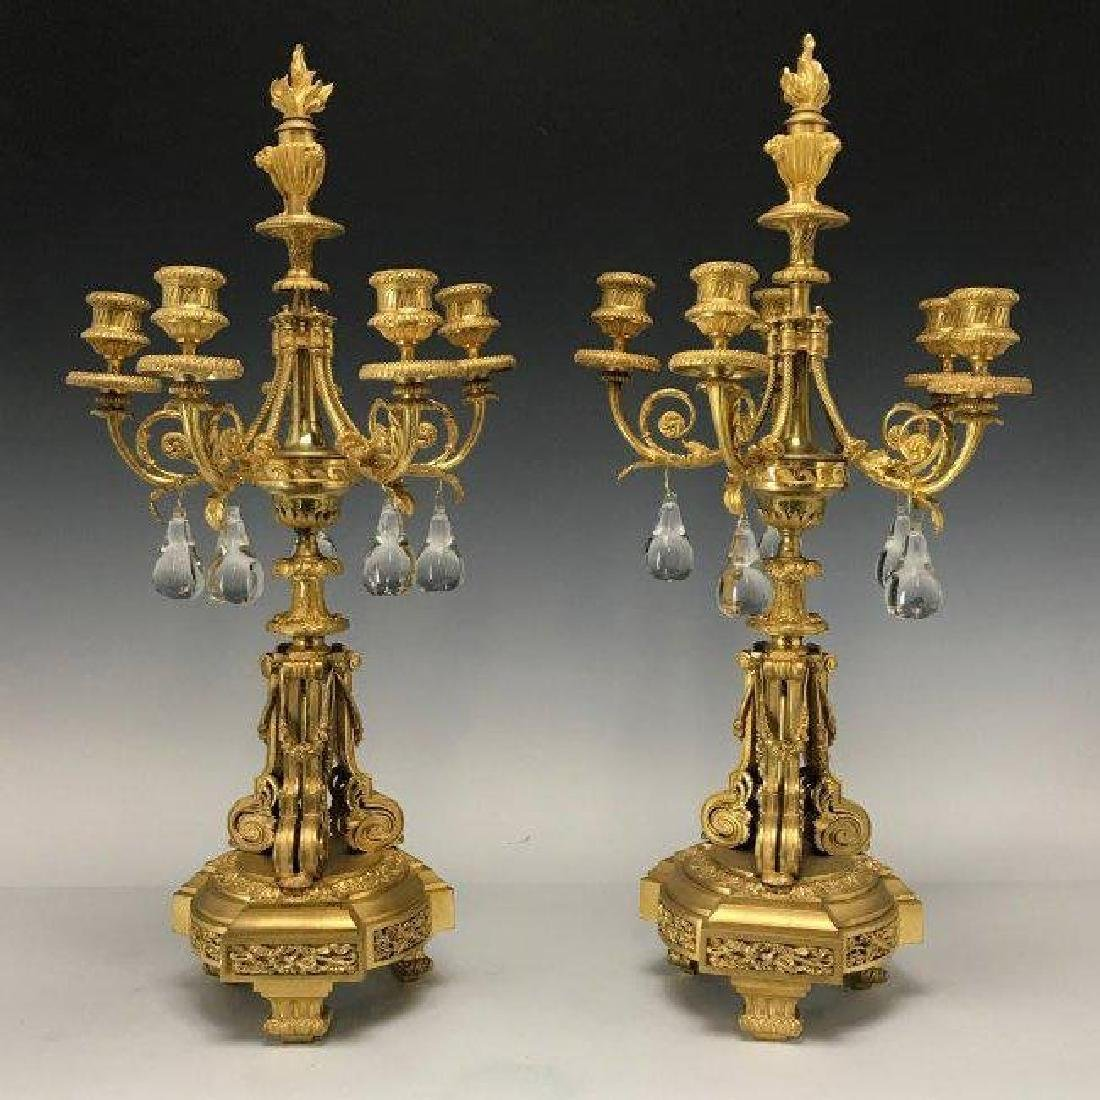 PAIR OF DORE BRONZE AND BACCARAT CANDELABRA